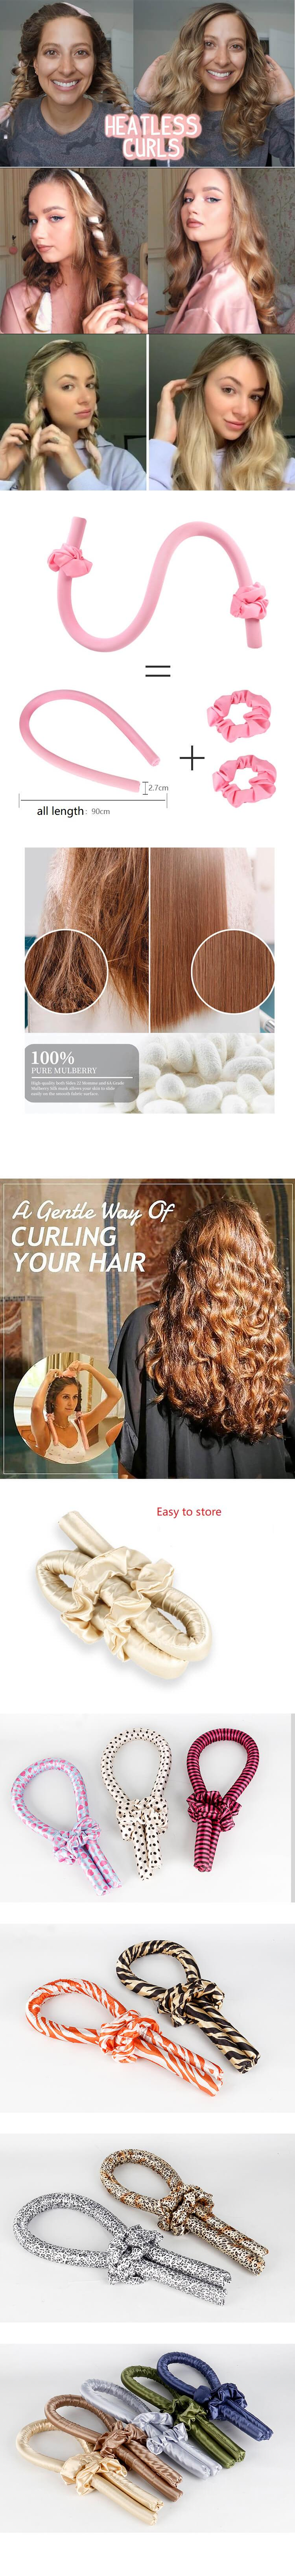 Nature Curling iron